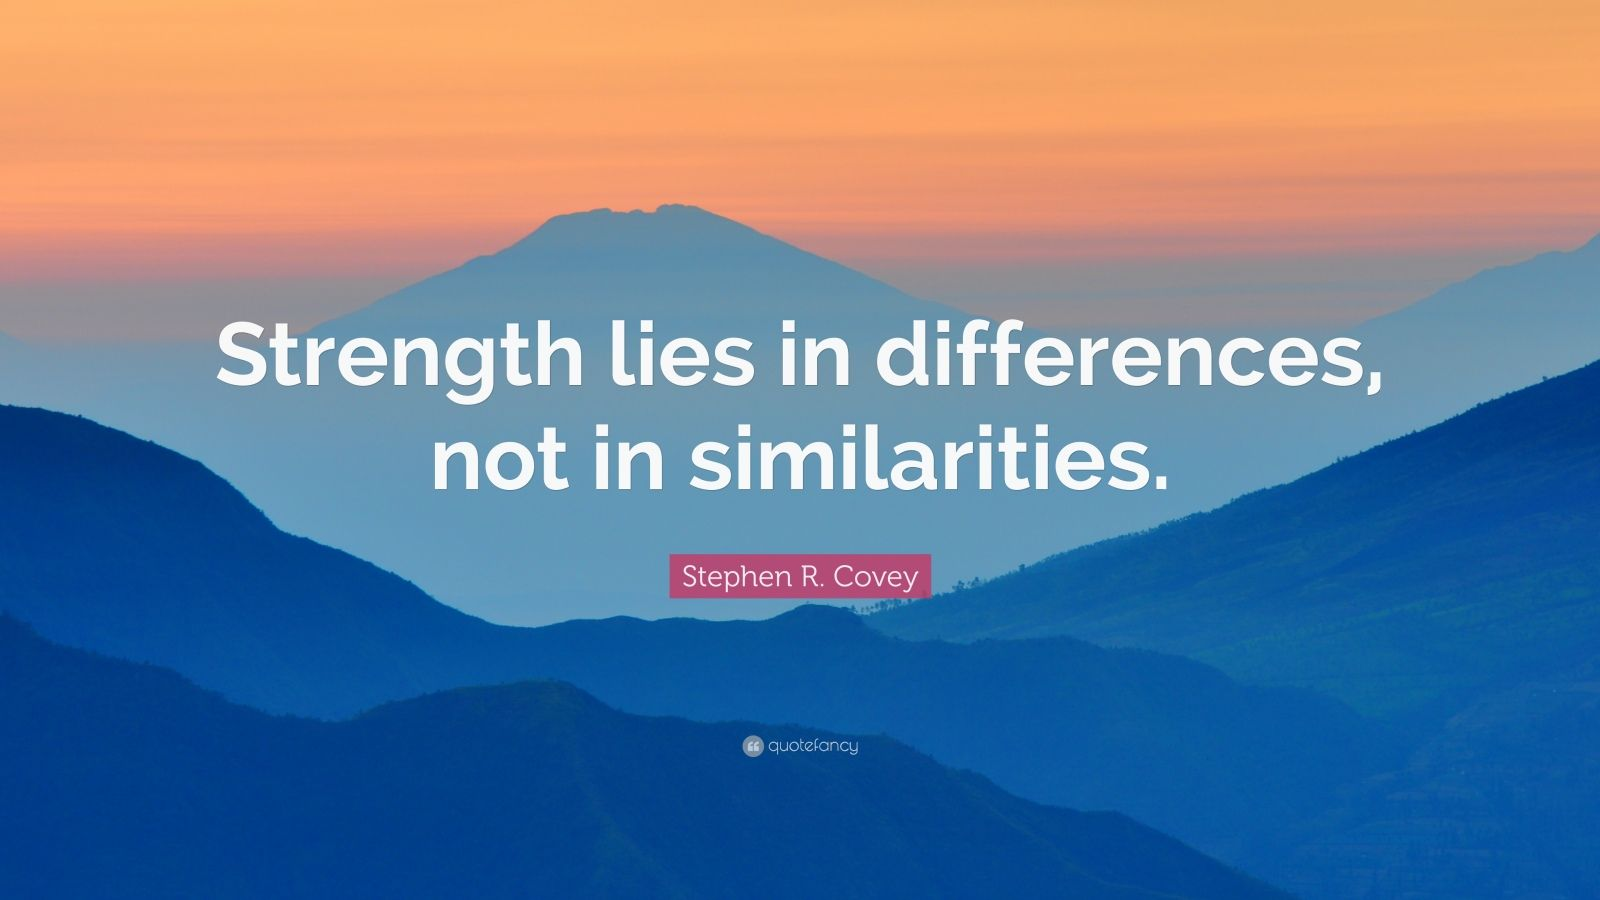 Business Success Quotes Wallpaper Stephen R Covey Quote Strength Lies In Differences Not